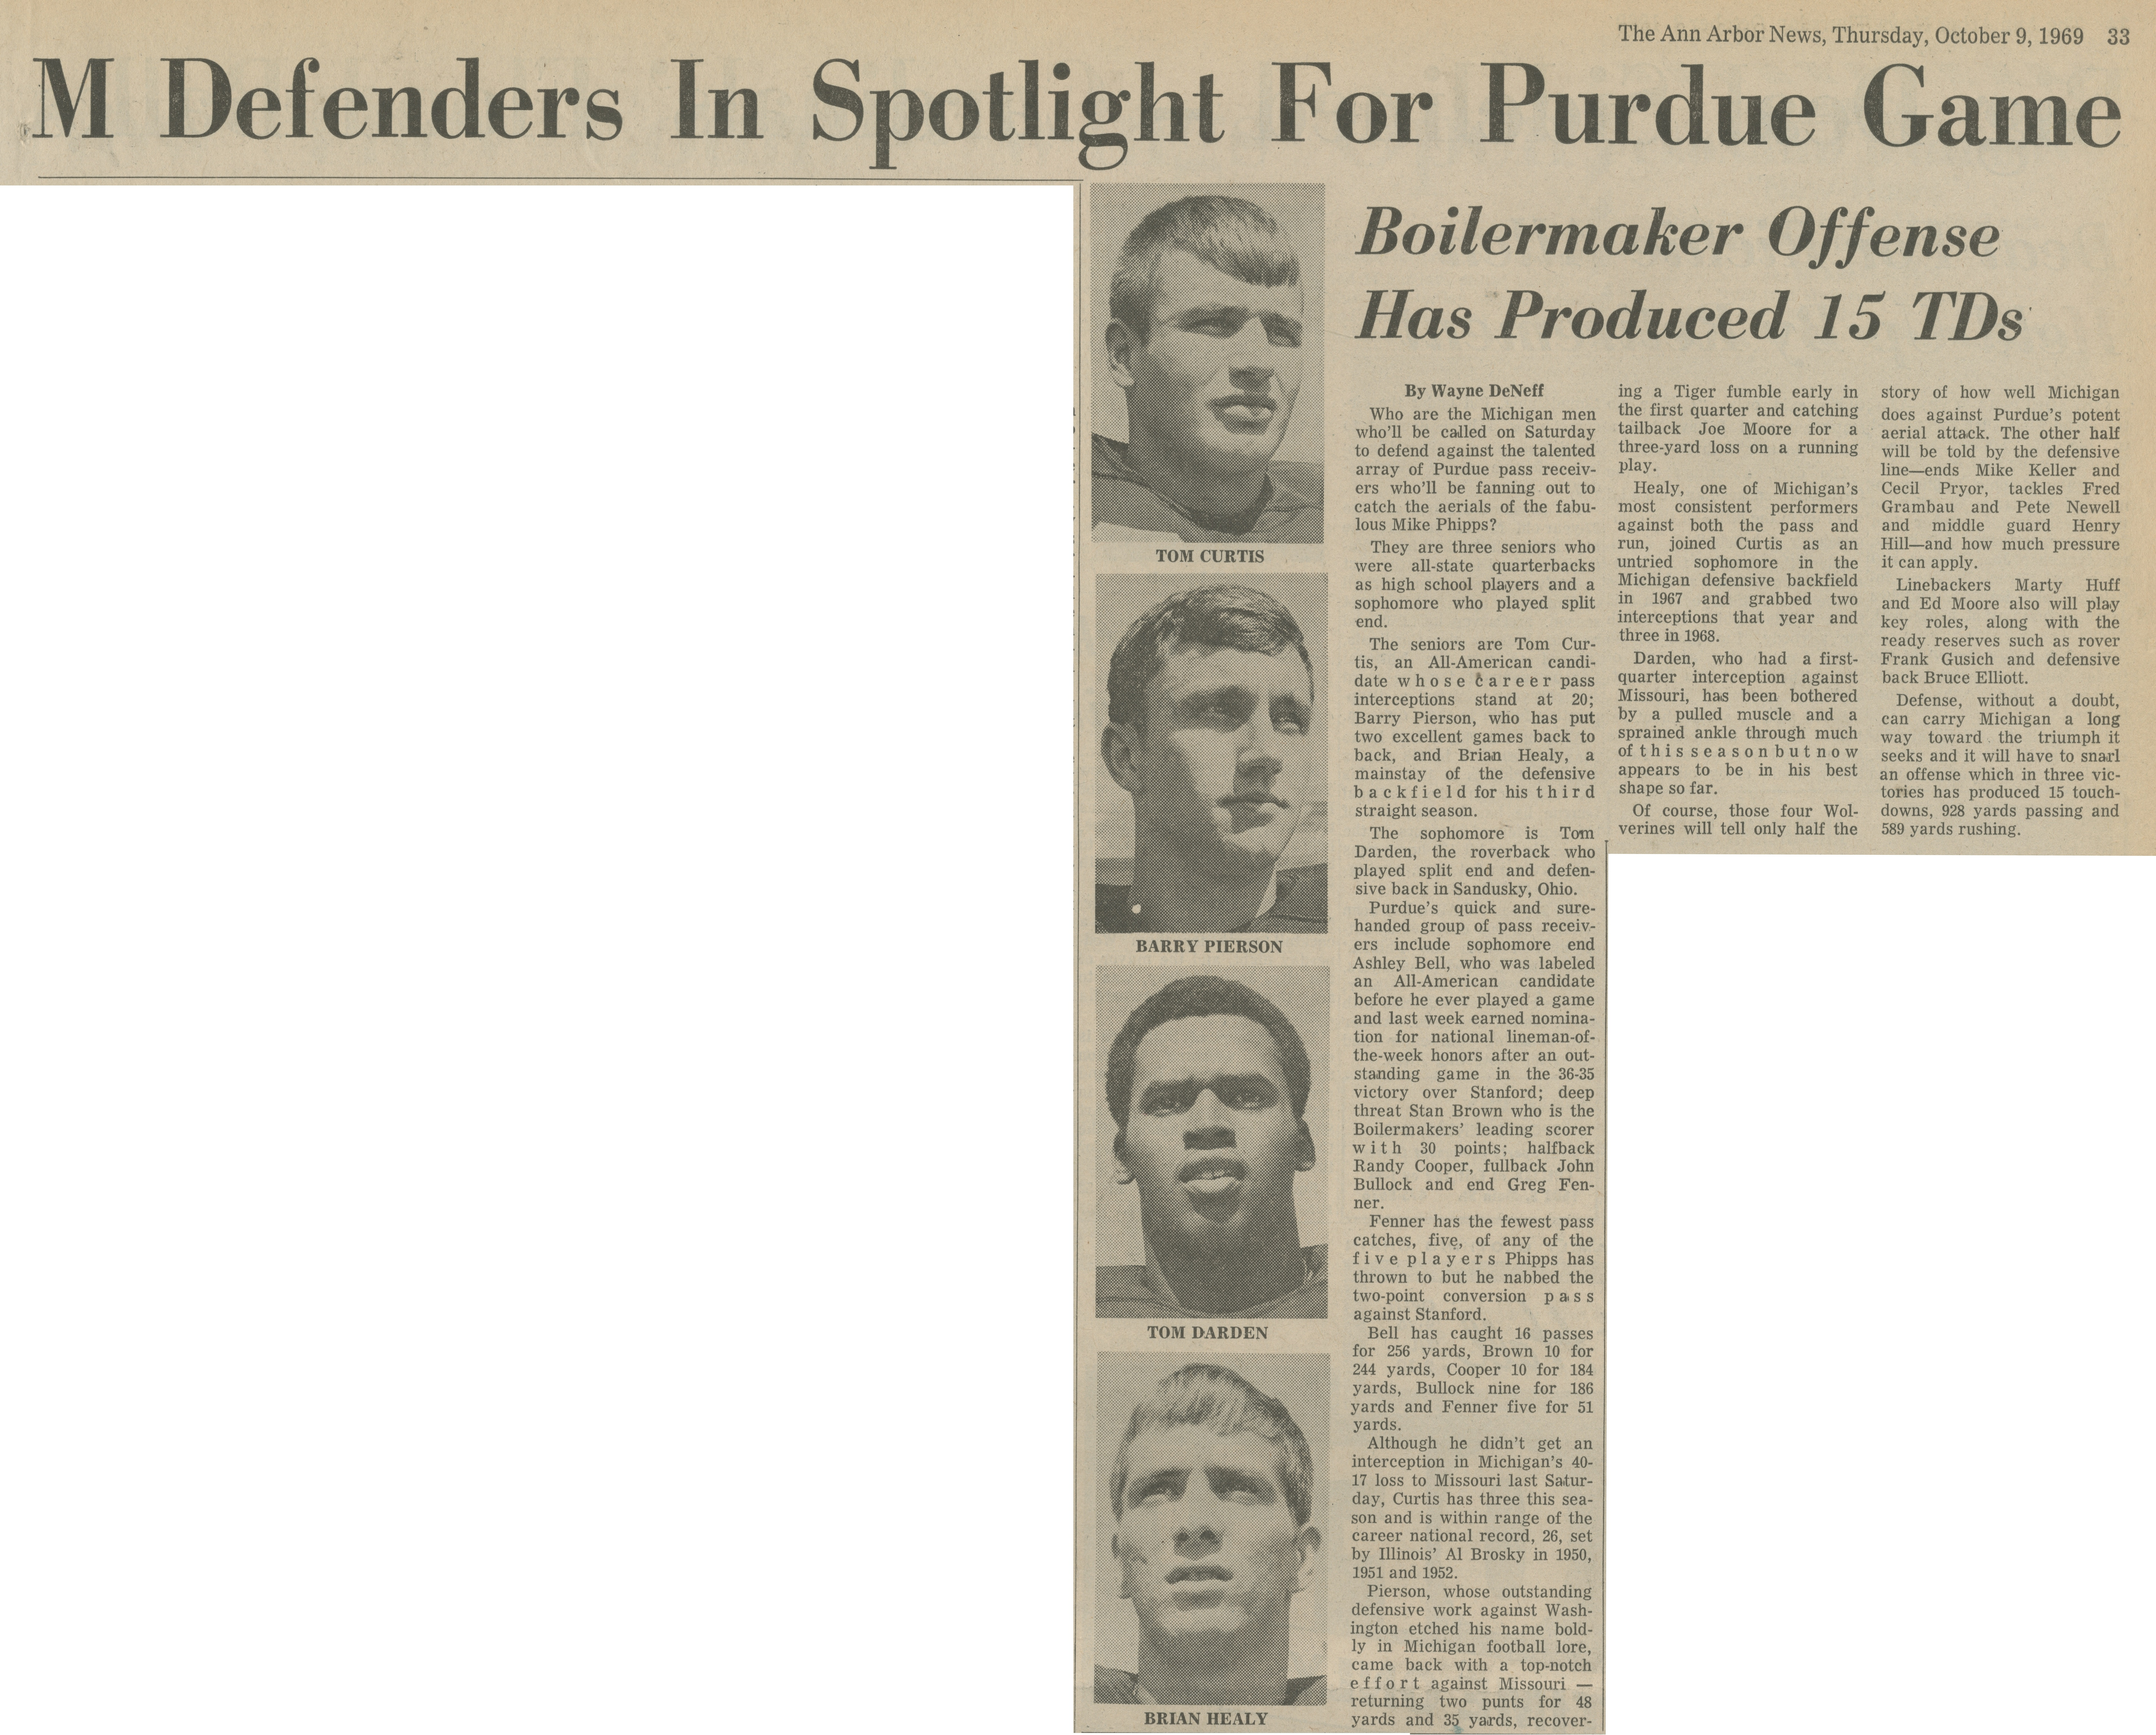 M Defenders In Spotlight For Purdue Game image